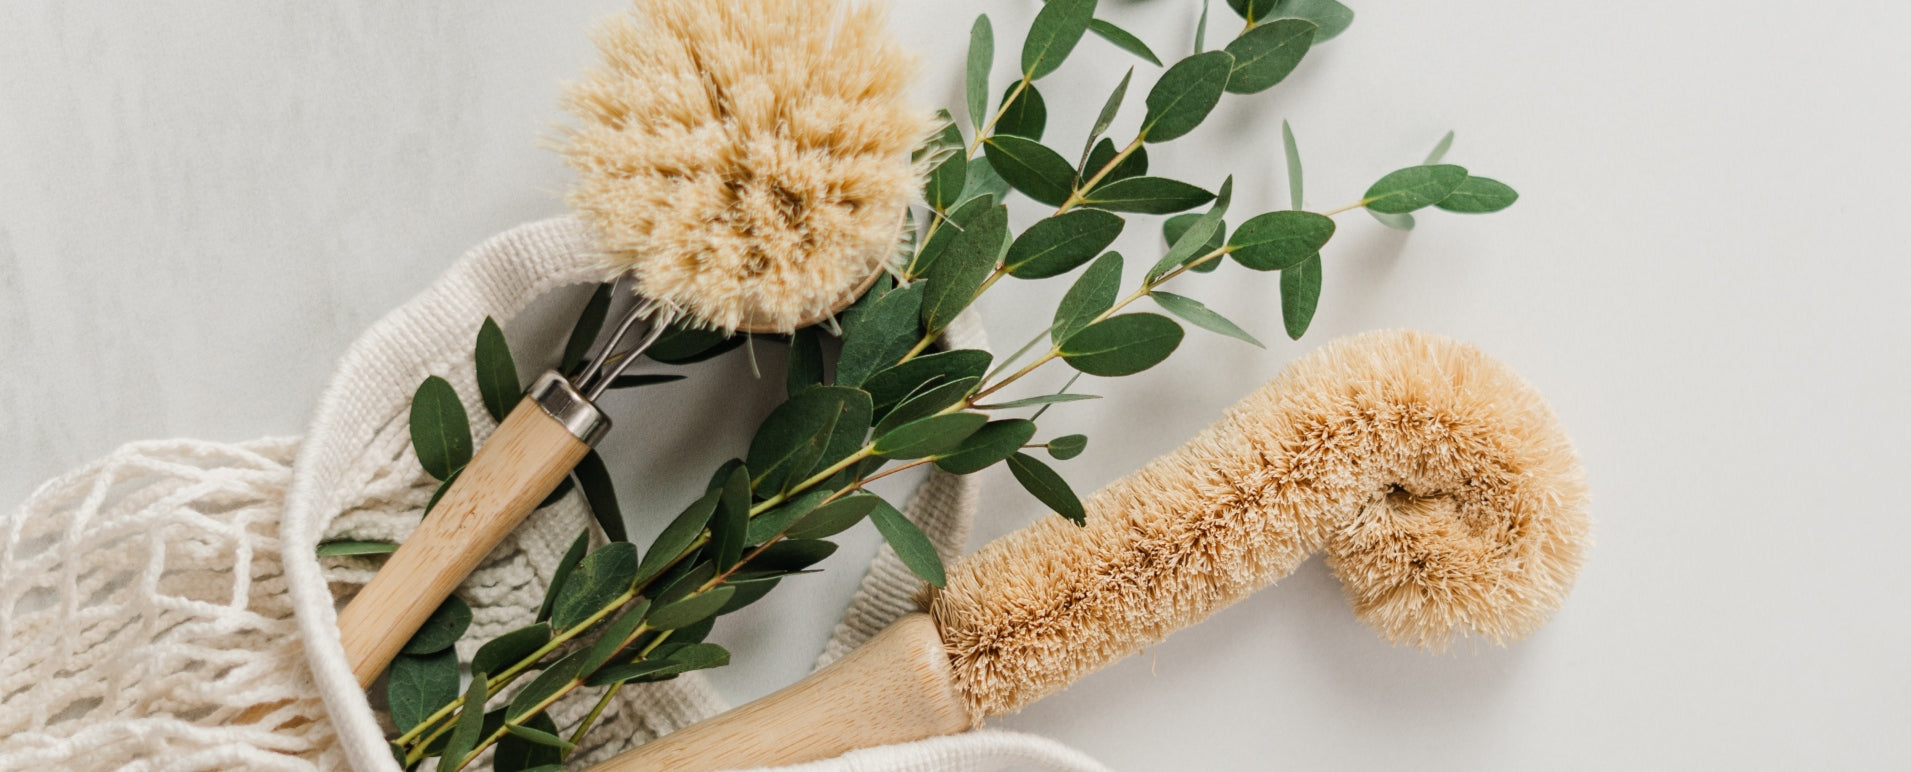 Reusable bag with natural fiber scrubbers and eucalyptus pouring out